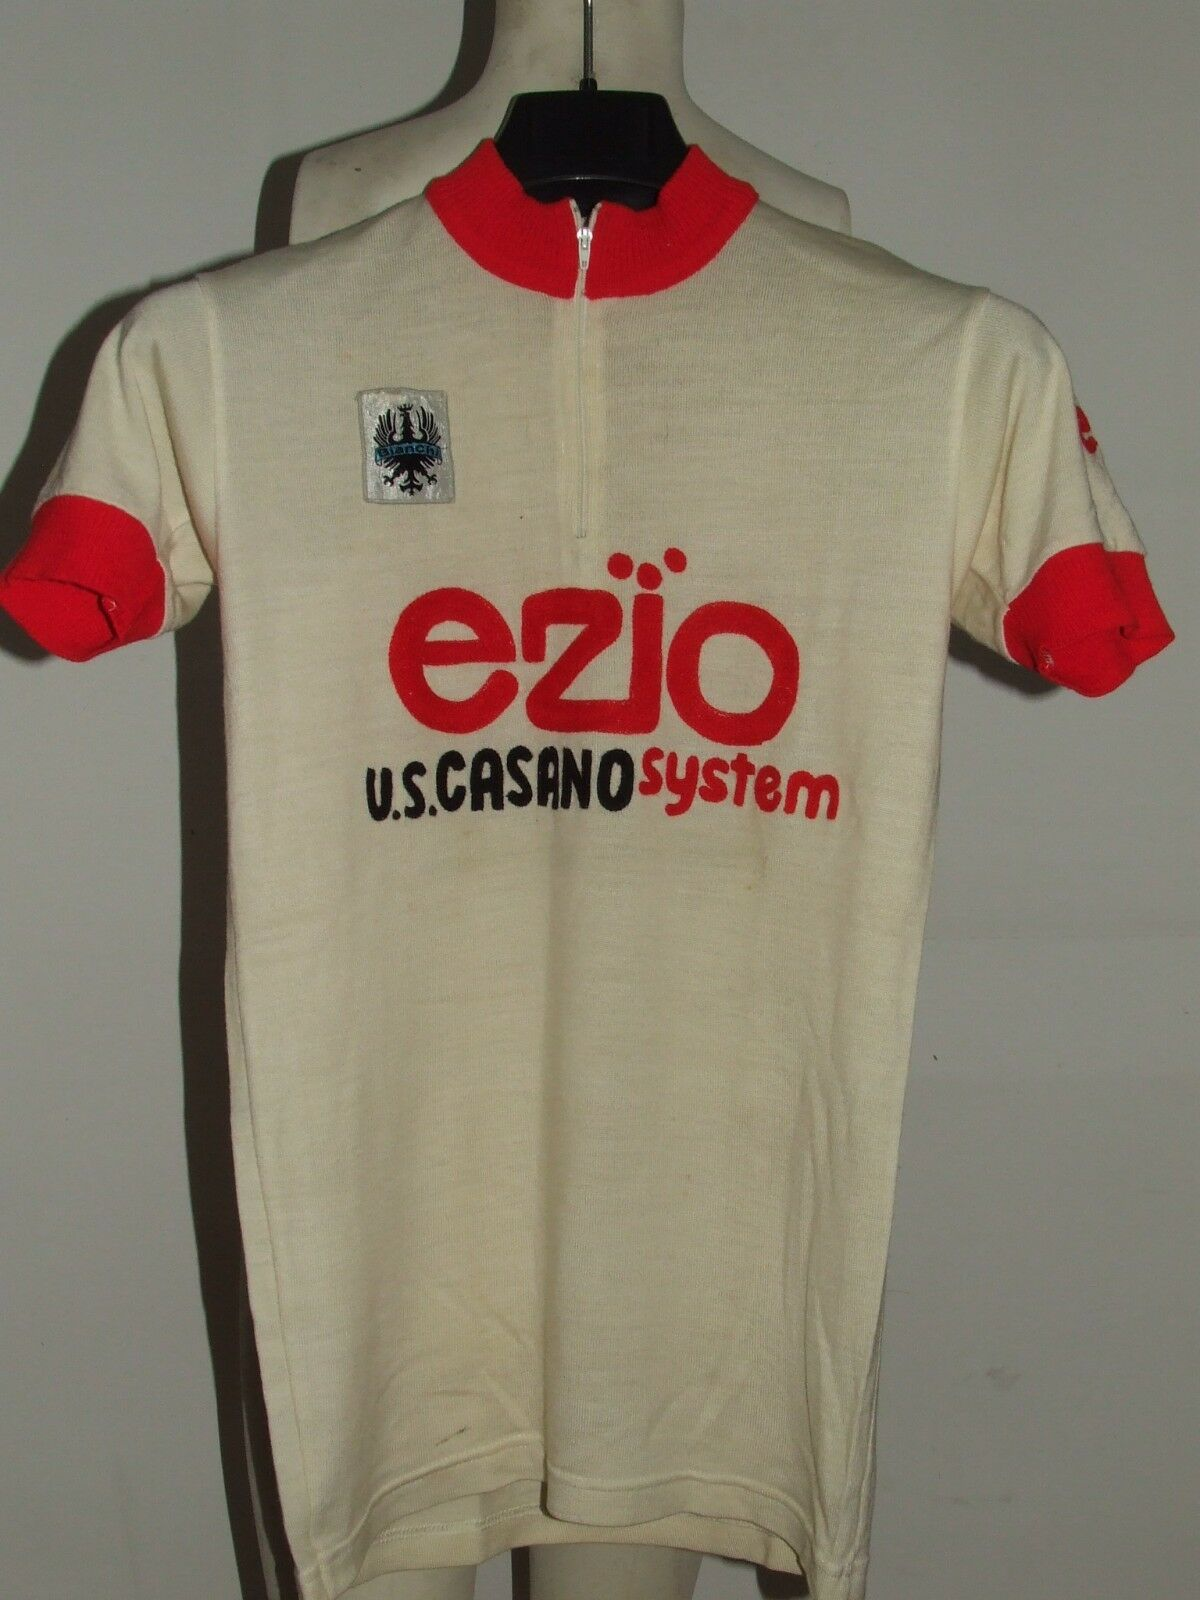 Bike Jersey Shirt Maillot, Yonne Cycling Heroic Vintage  70's Ezio 50% Wool Embroidered  official website